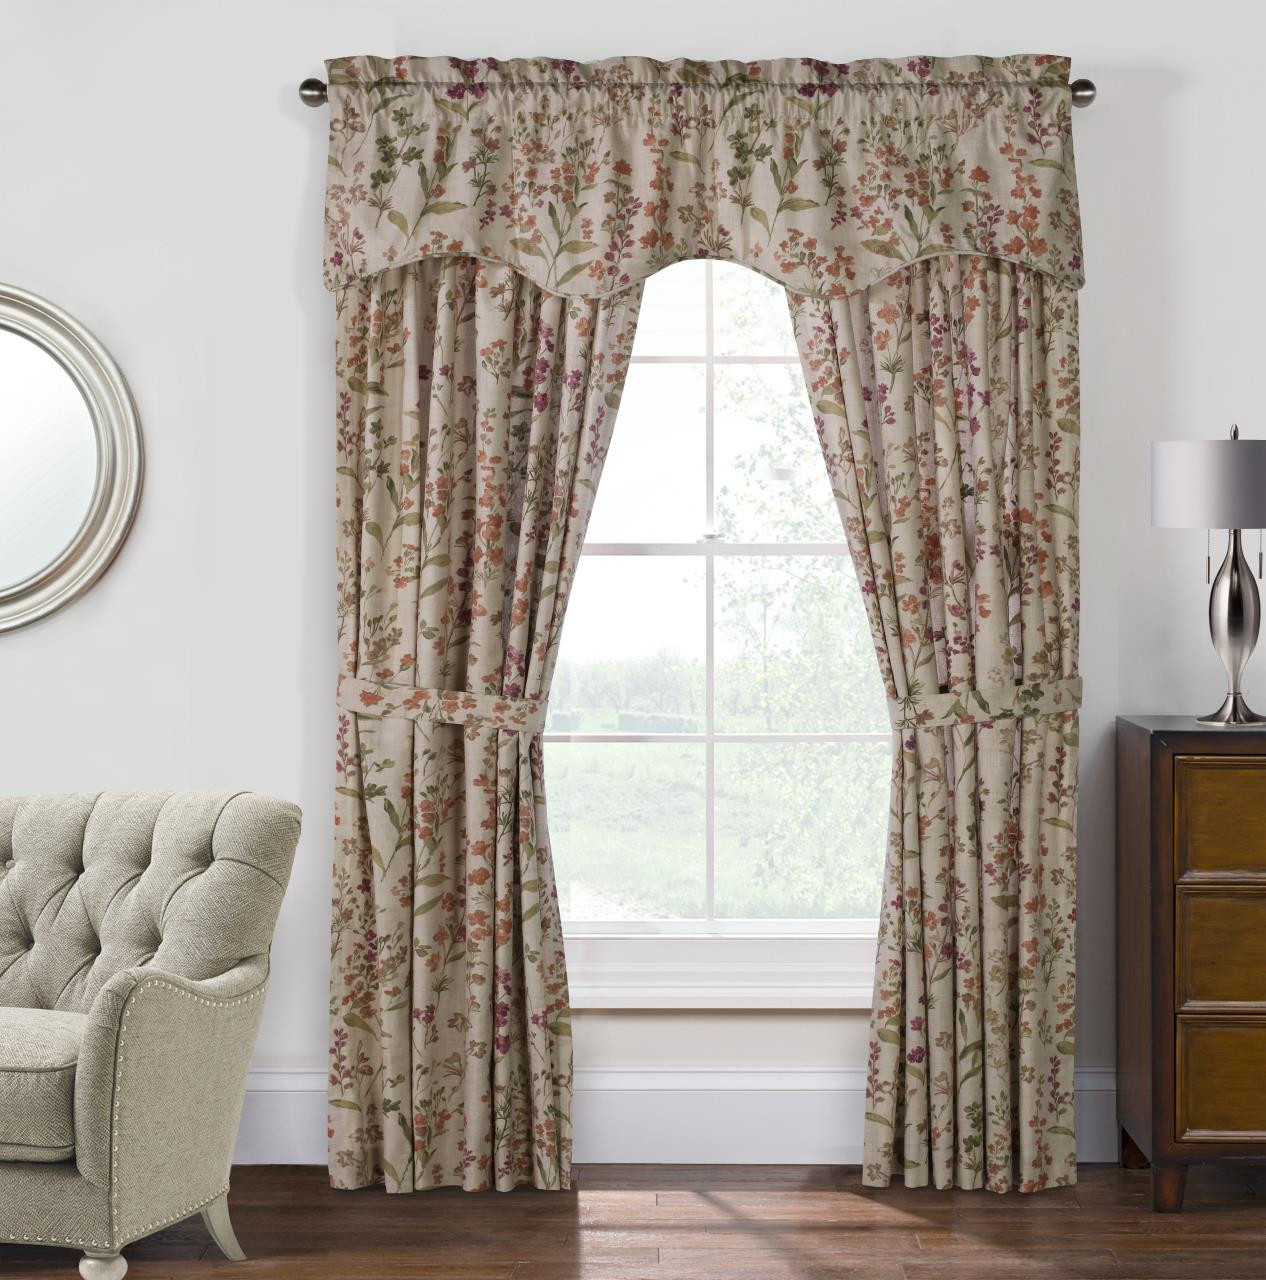 Rockport Floral Curtains - 695565134408